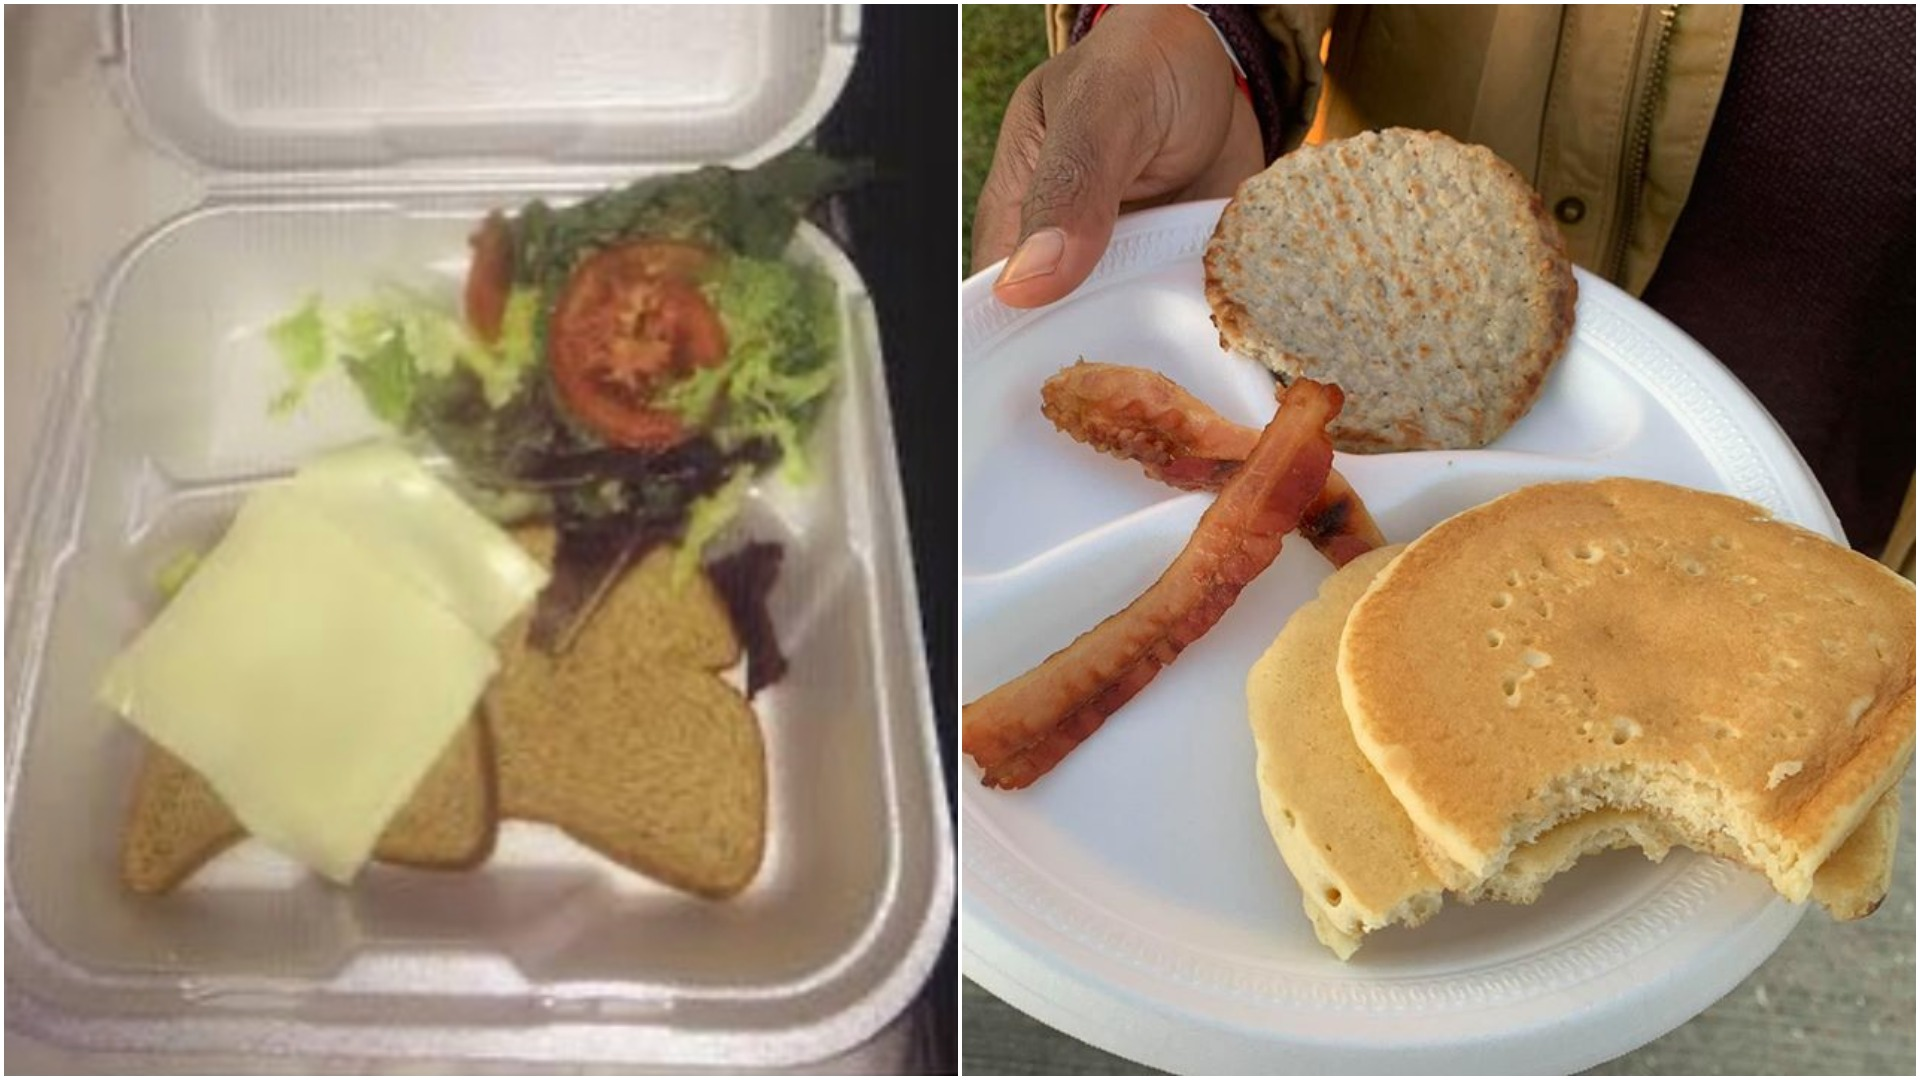 Food from Fyre Festival compared to food from Kanye West's Brunchella